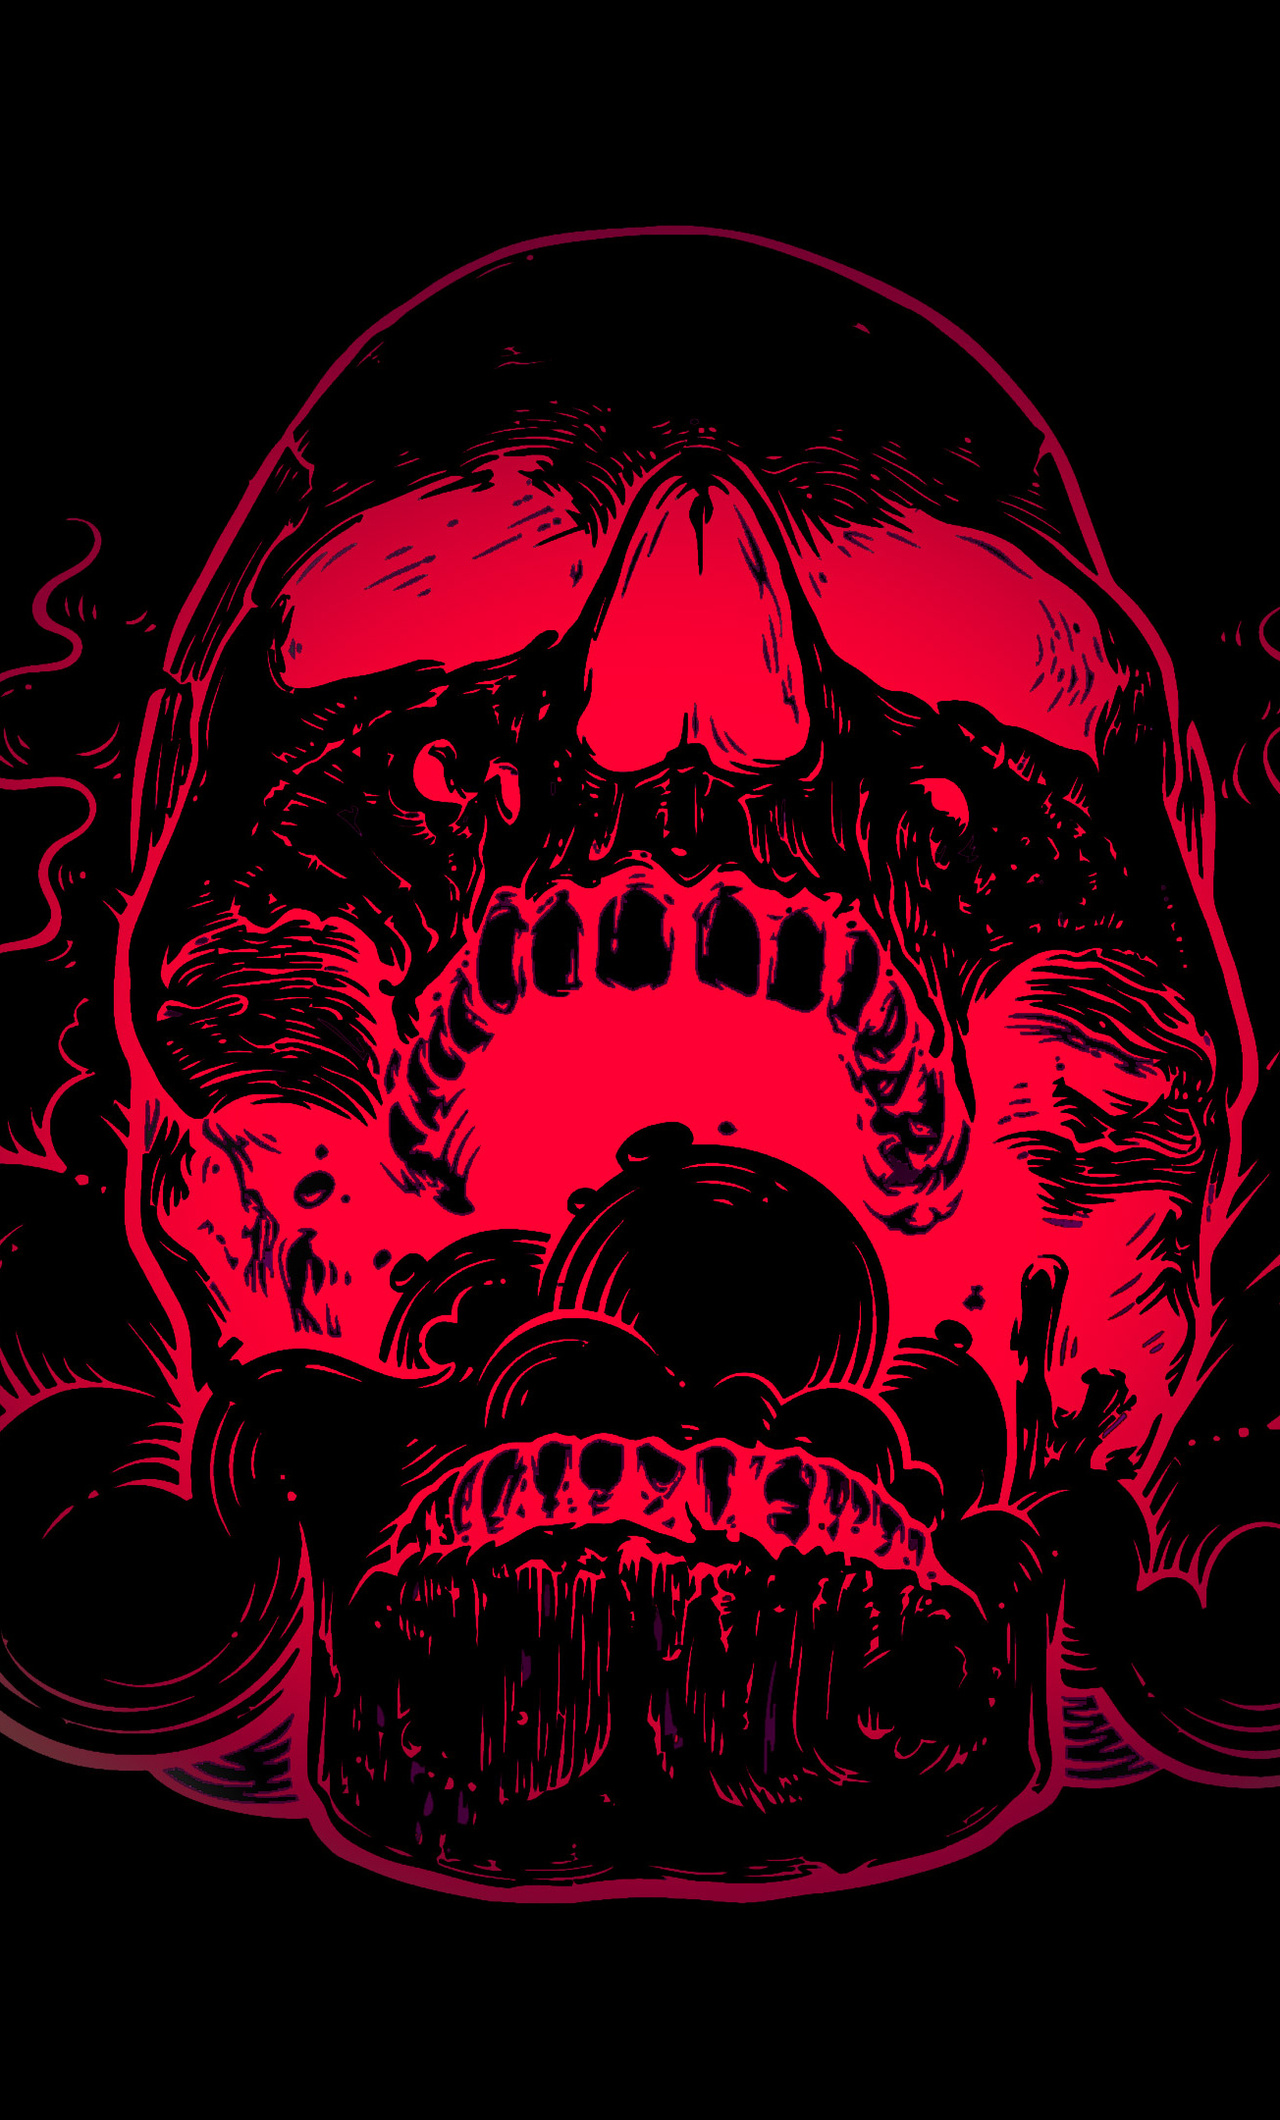 Red Skull Flowers Black Background 4k O4